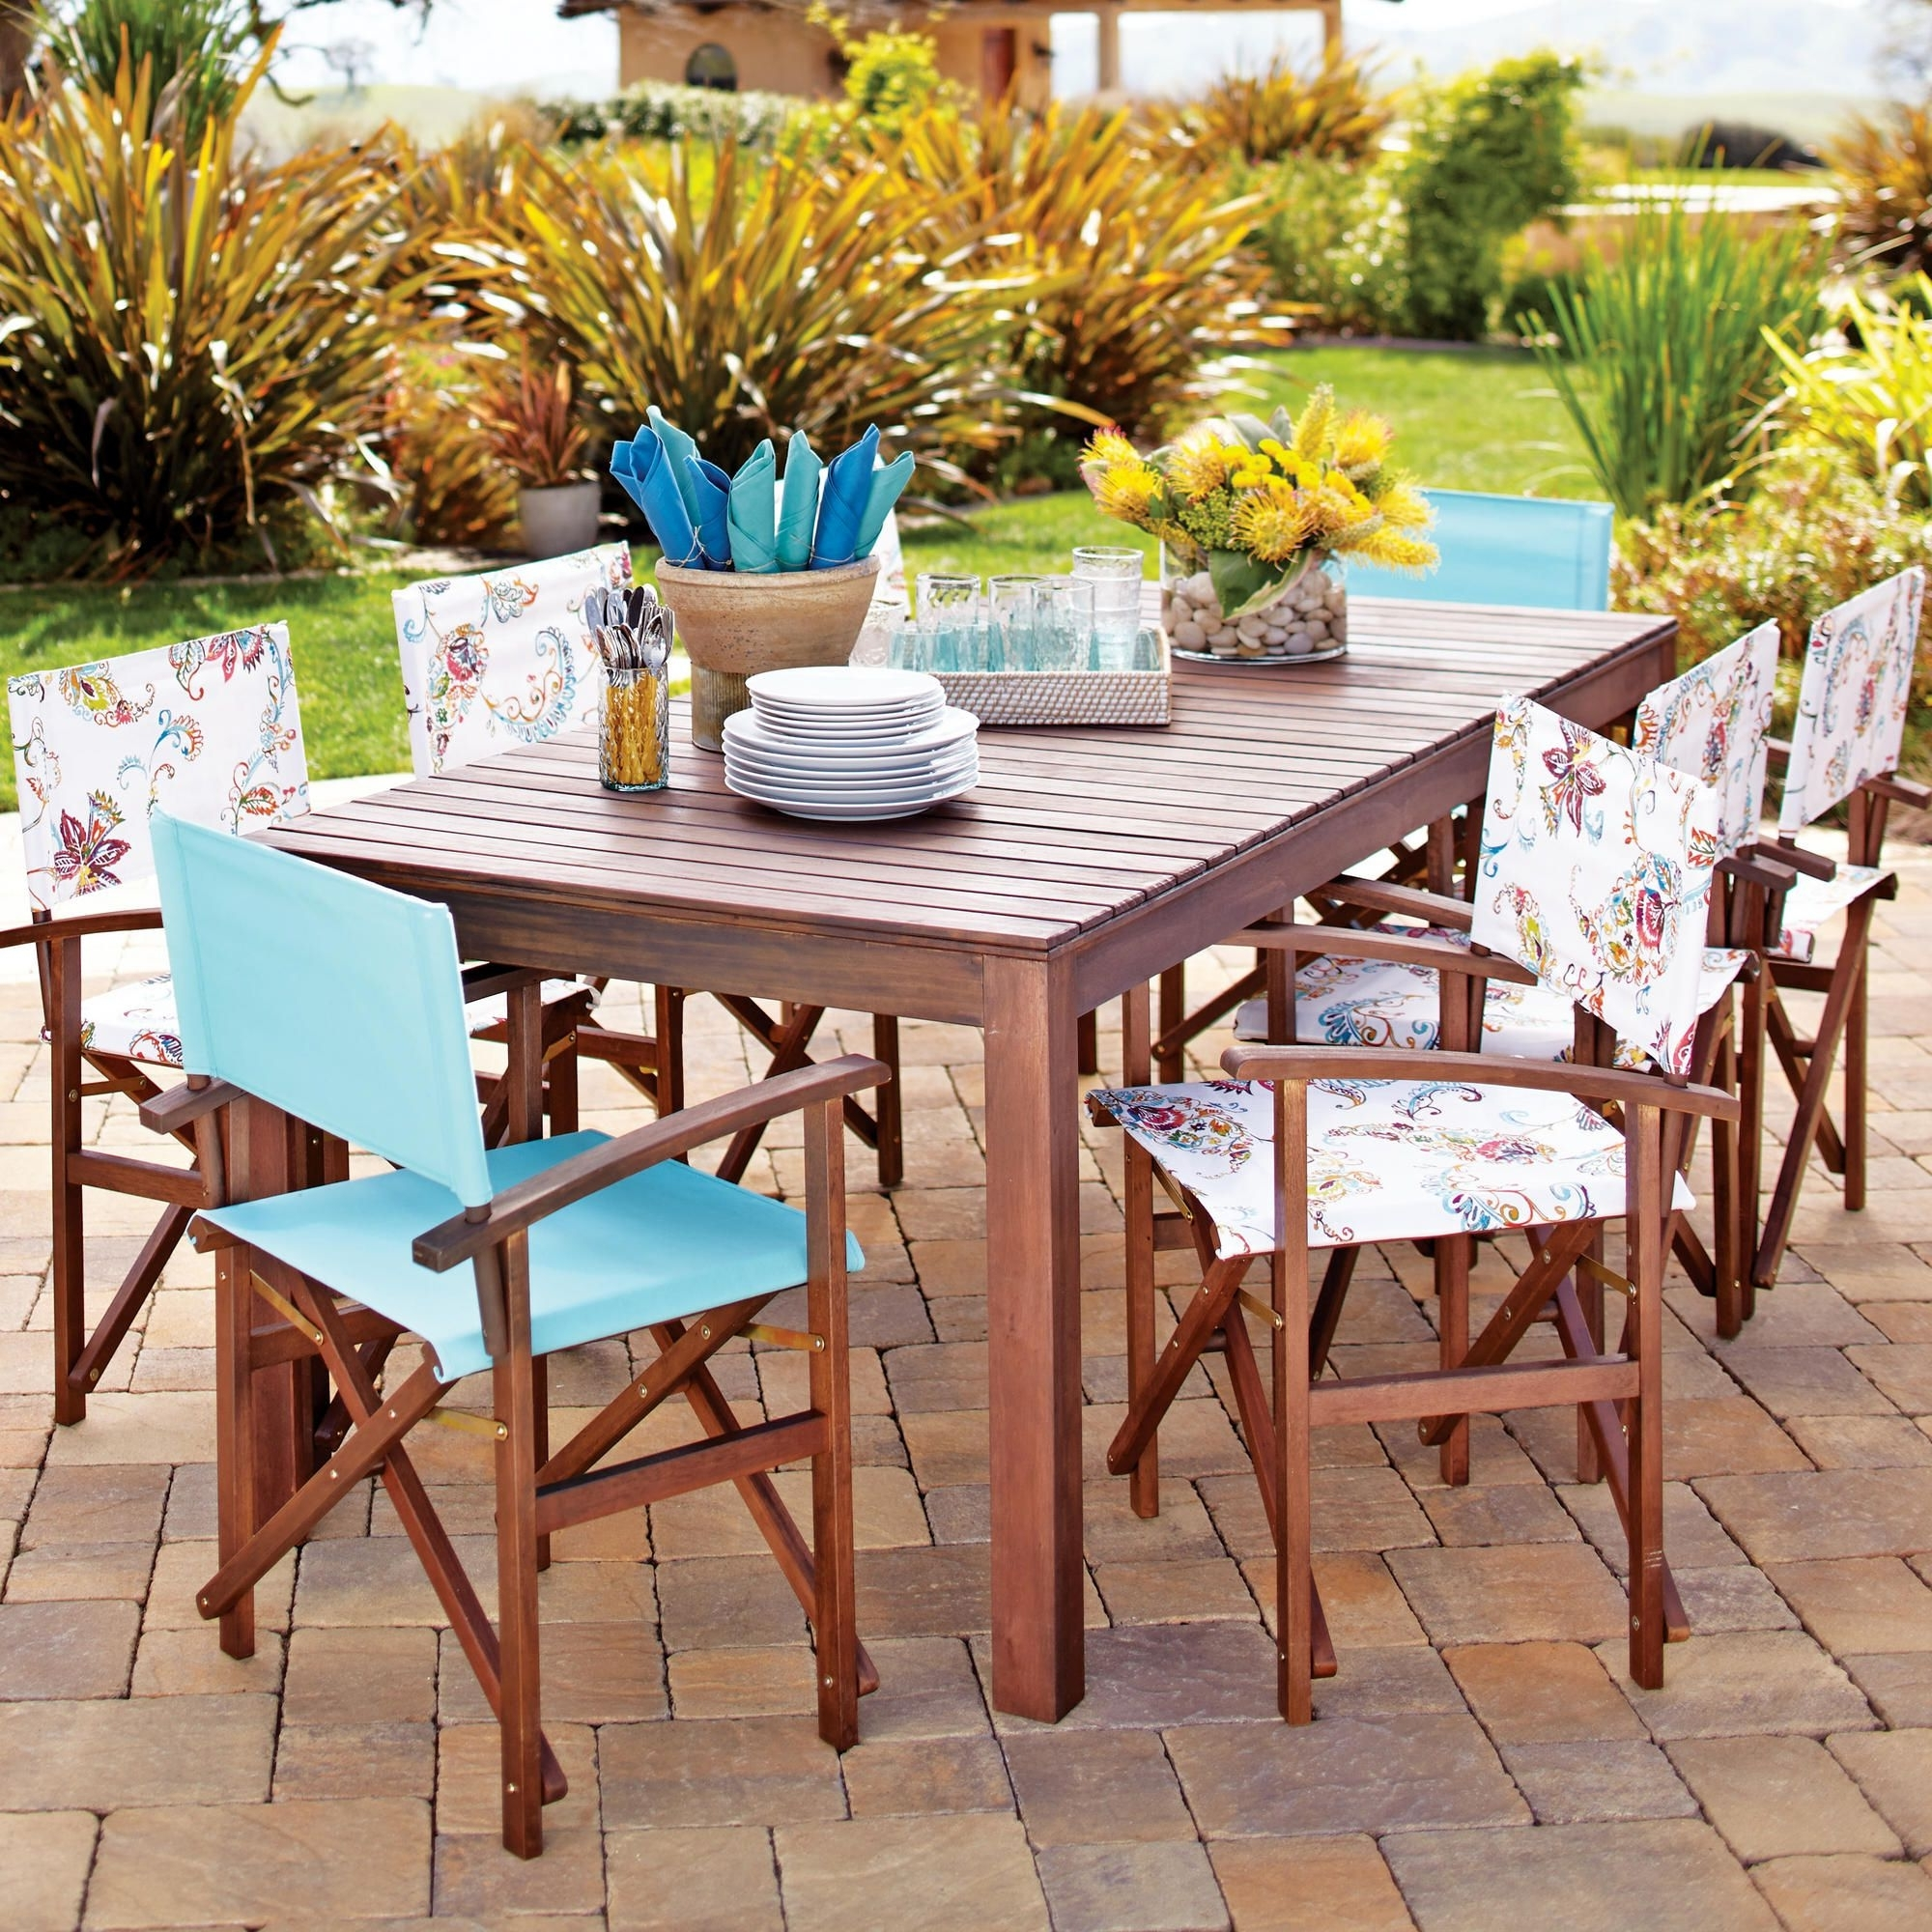 Home Style throughout Well-known Bali Dining Sets